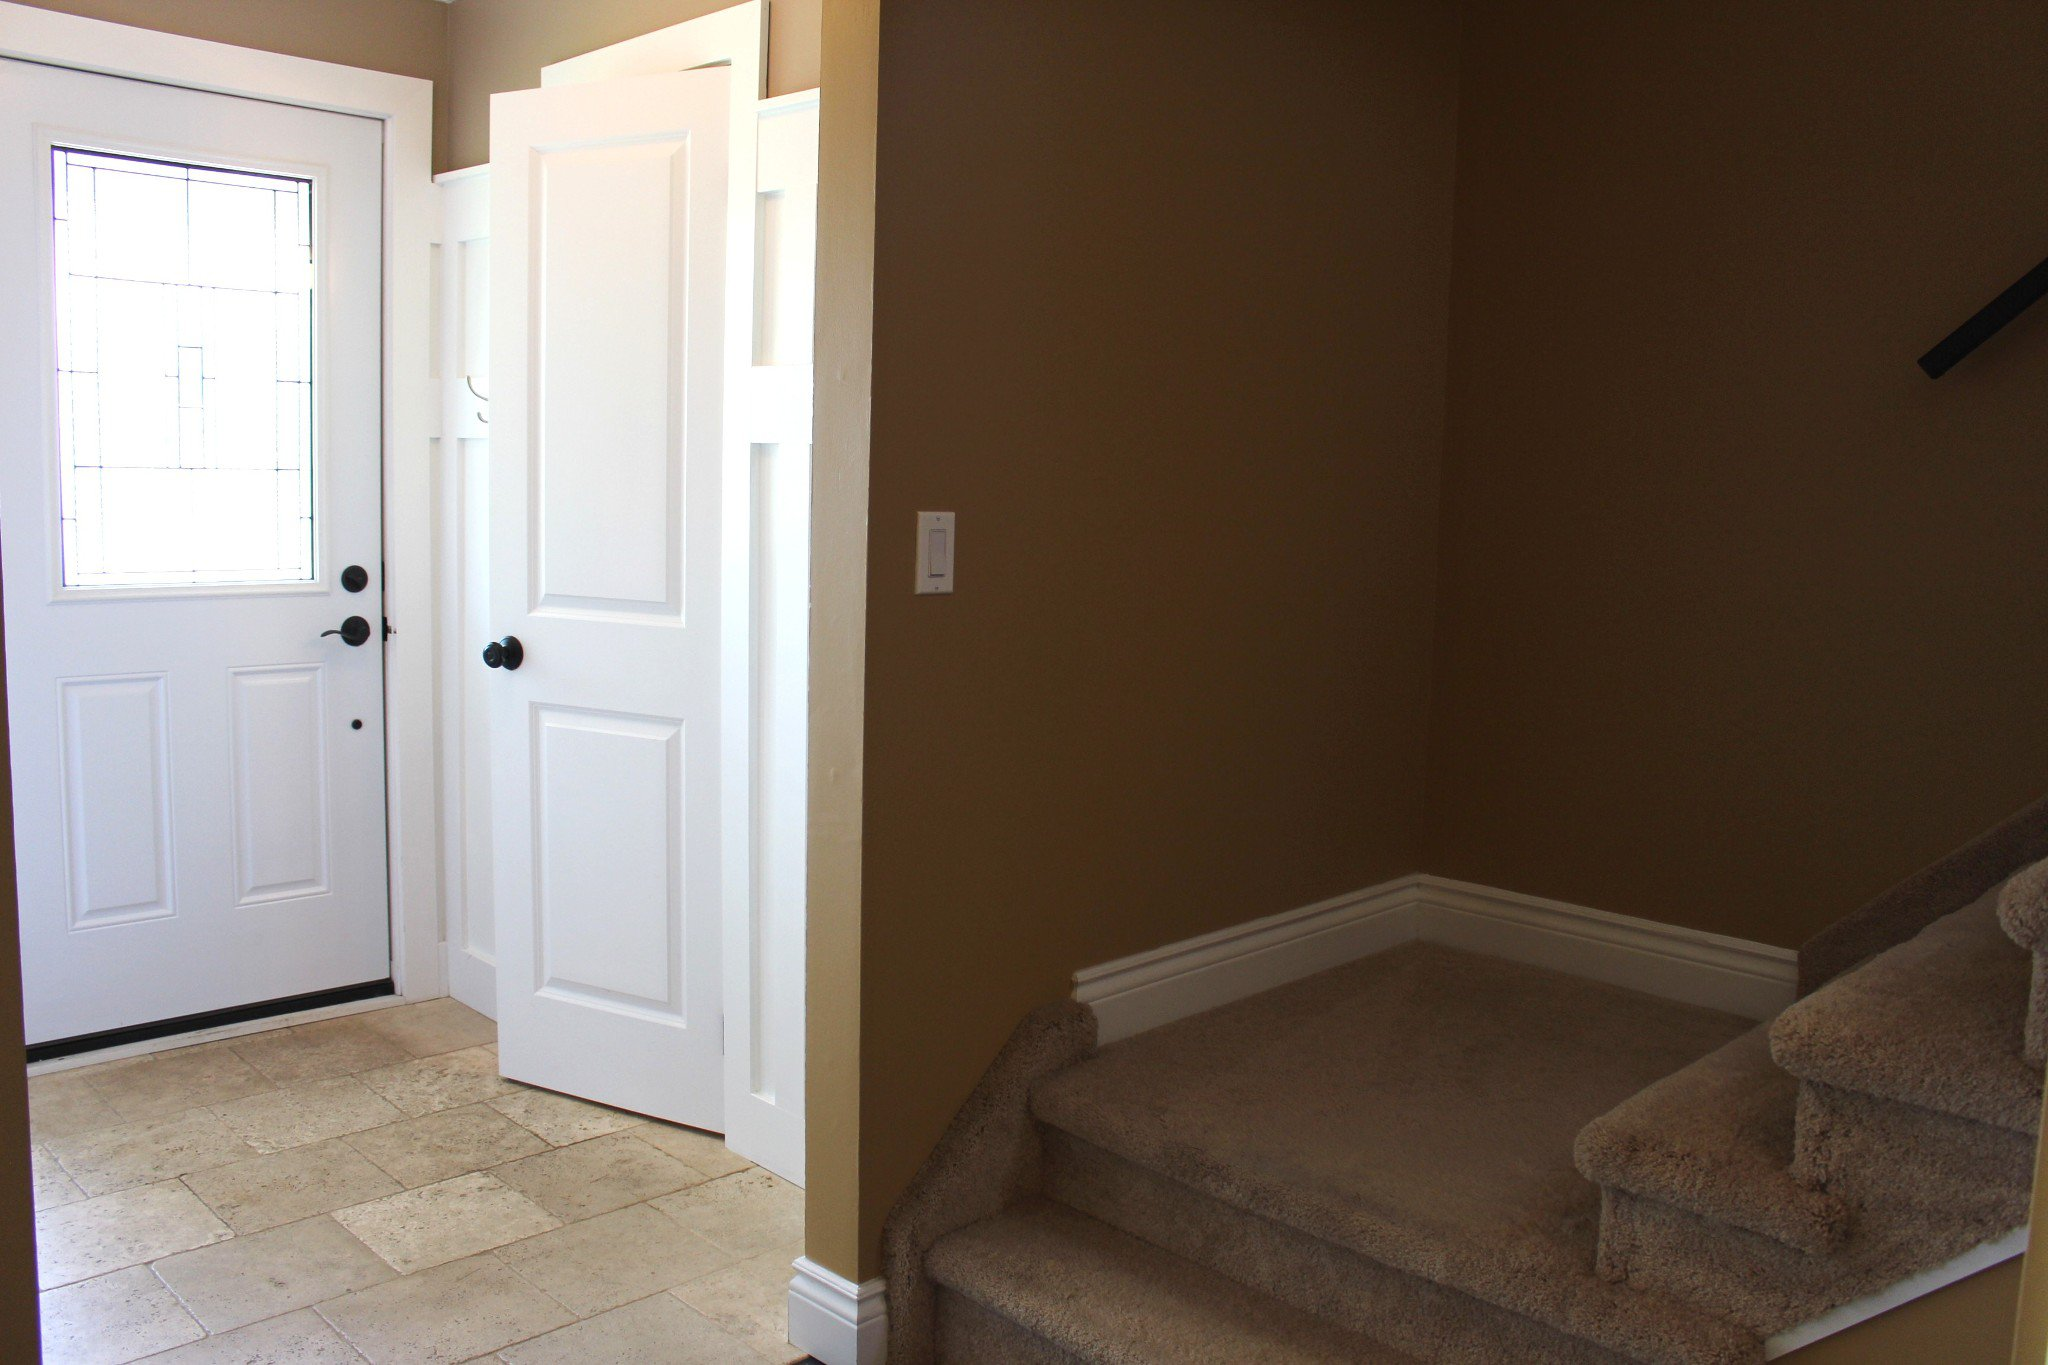 Photo 5: Photos: 751 Spragge Crescent in Cobourg: Residential Detached for sale : MLS®# 1291056